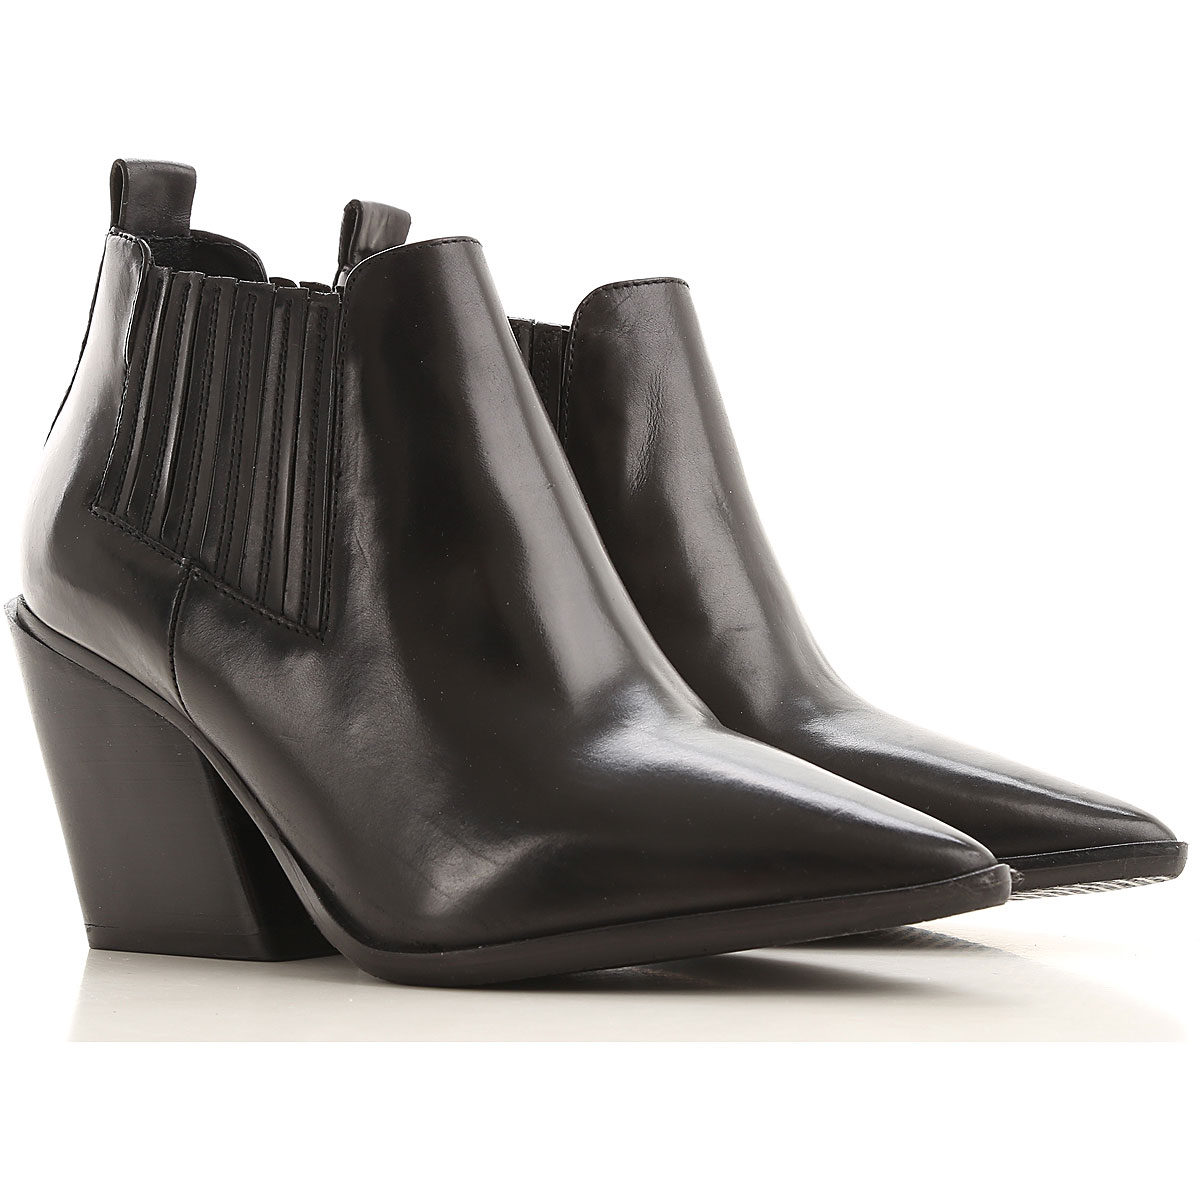 Elvio Zanon Boots for Women, Booties On Sale in Outlet, Black, Nappa Leather, 2019, 10 6 7 8 9